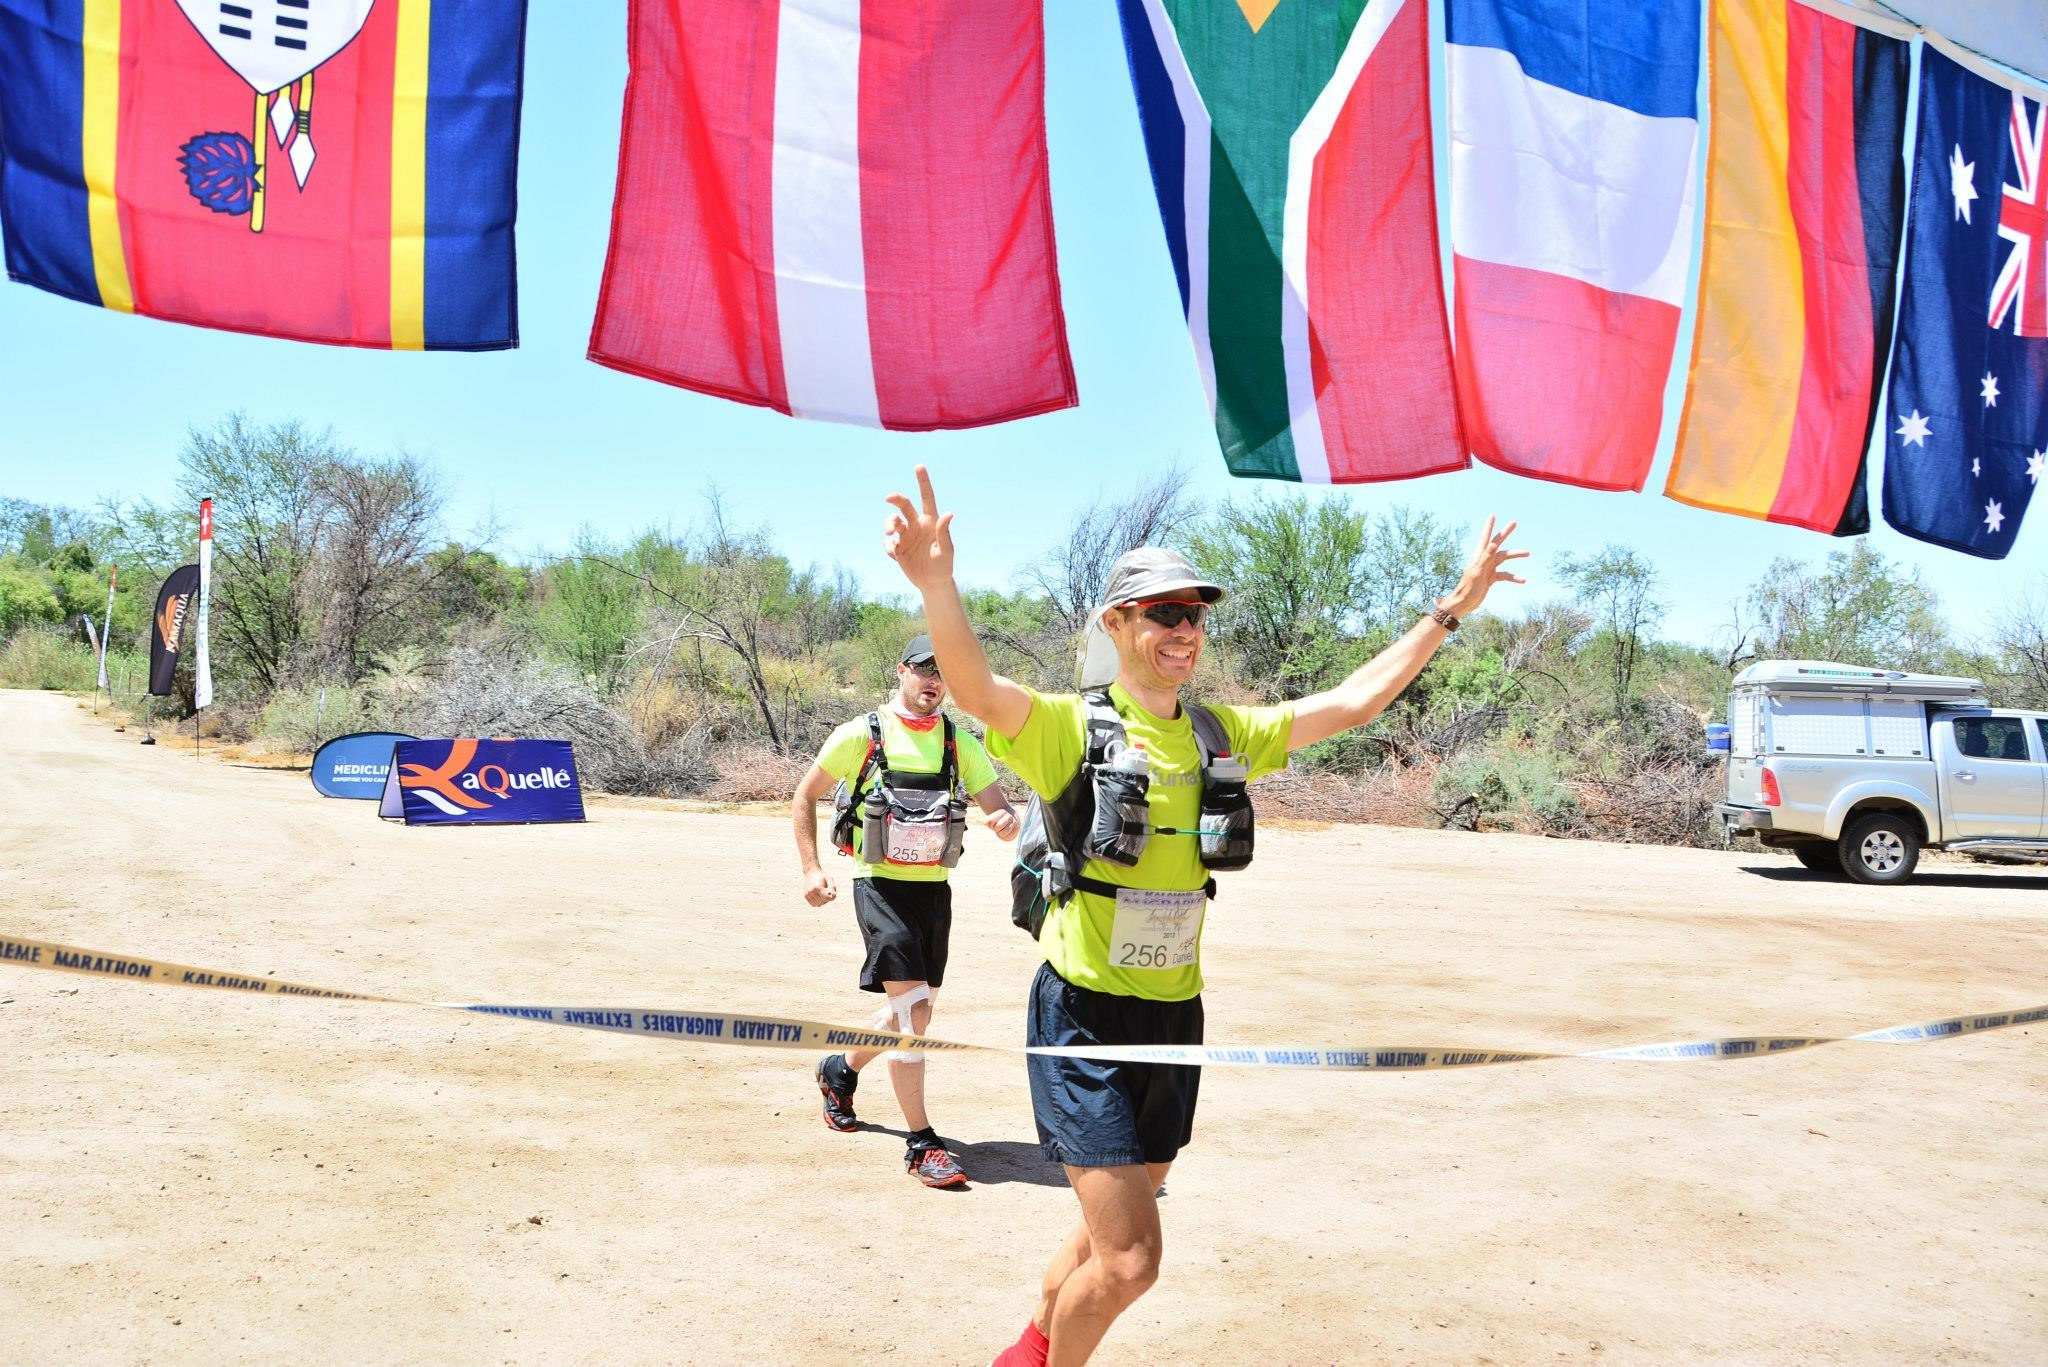 Daniel Rowland winning the Kalahari Augrabies Extreme Marathon 2013 (picture HermienWebb Photography, Facebook)